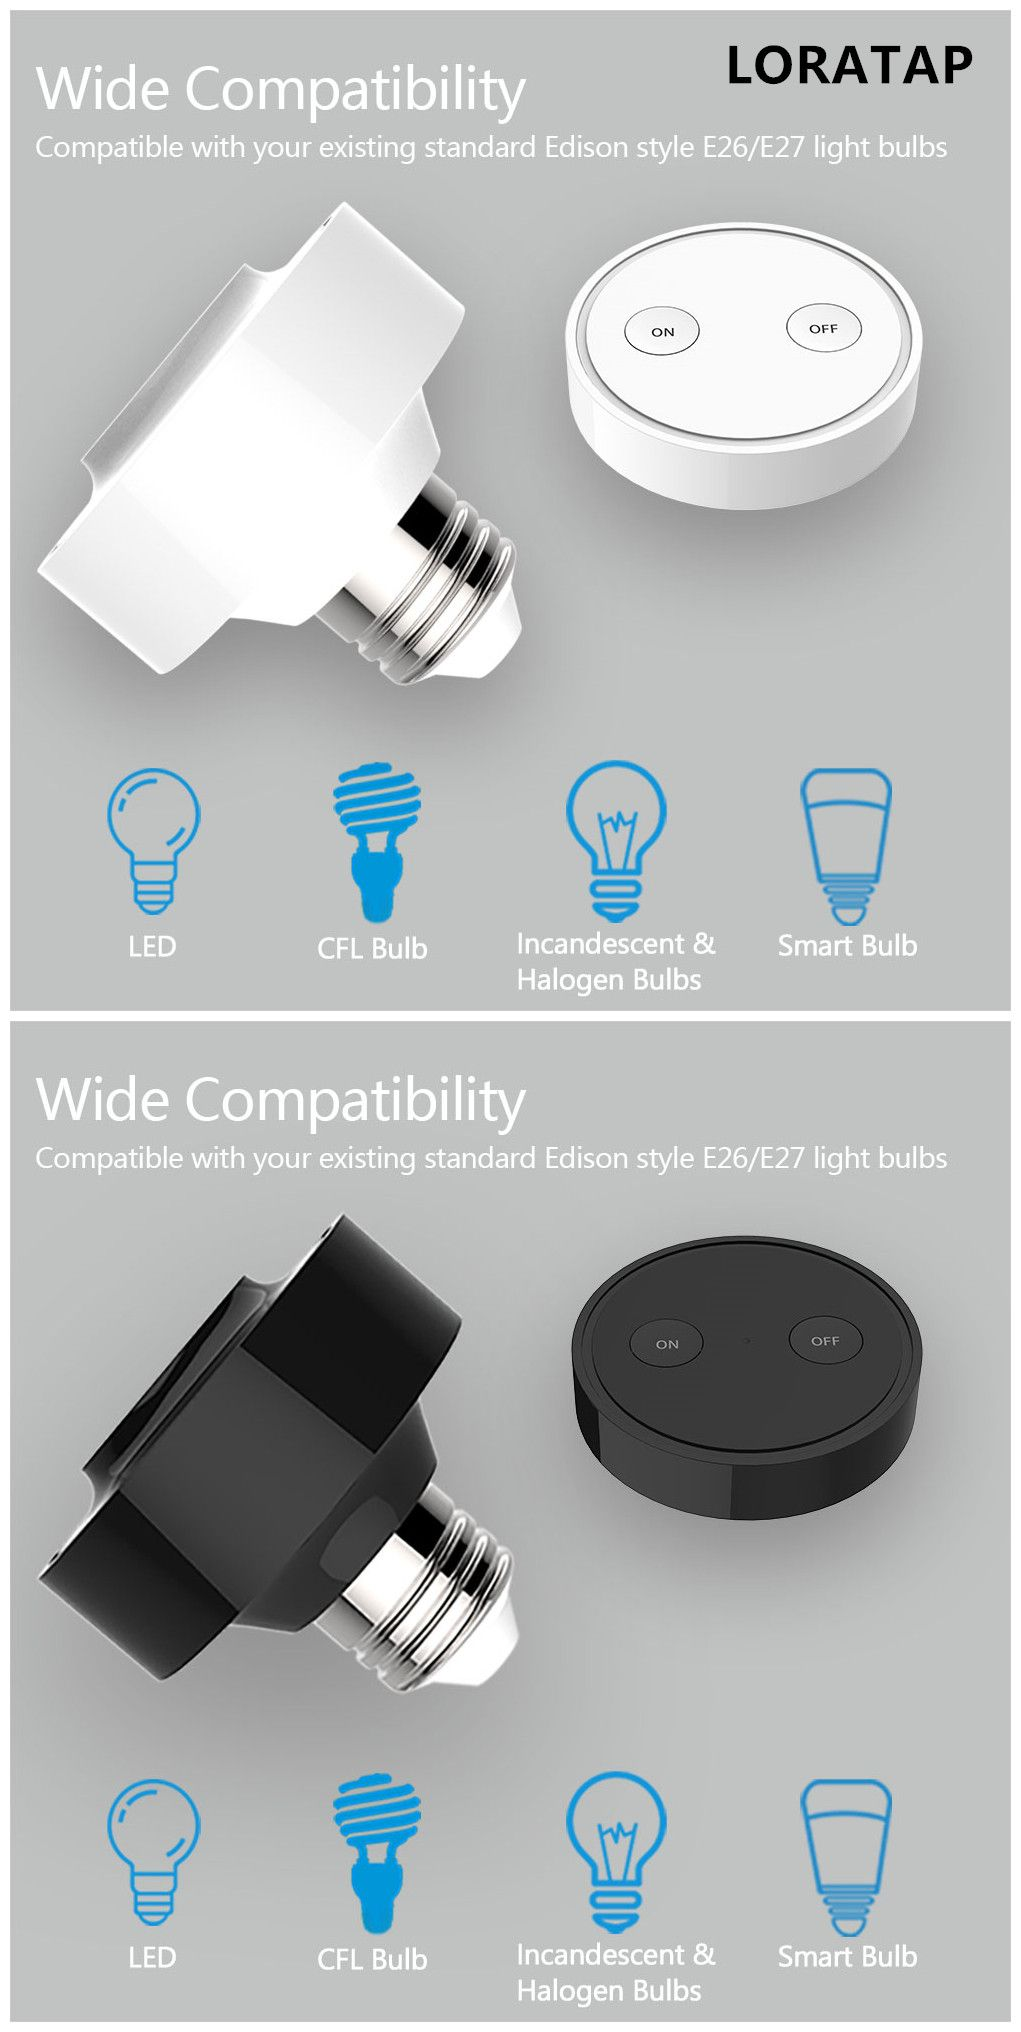 Loratap Focus On Wireless Light Switch Bulb Adapter Product Easy Installation Remote Control 53 Year Wa Wireless Light Bulb Light Bulb Adapter Bulb Adapter